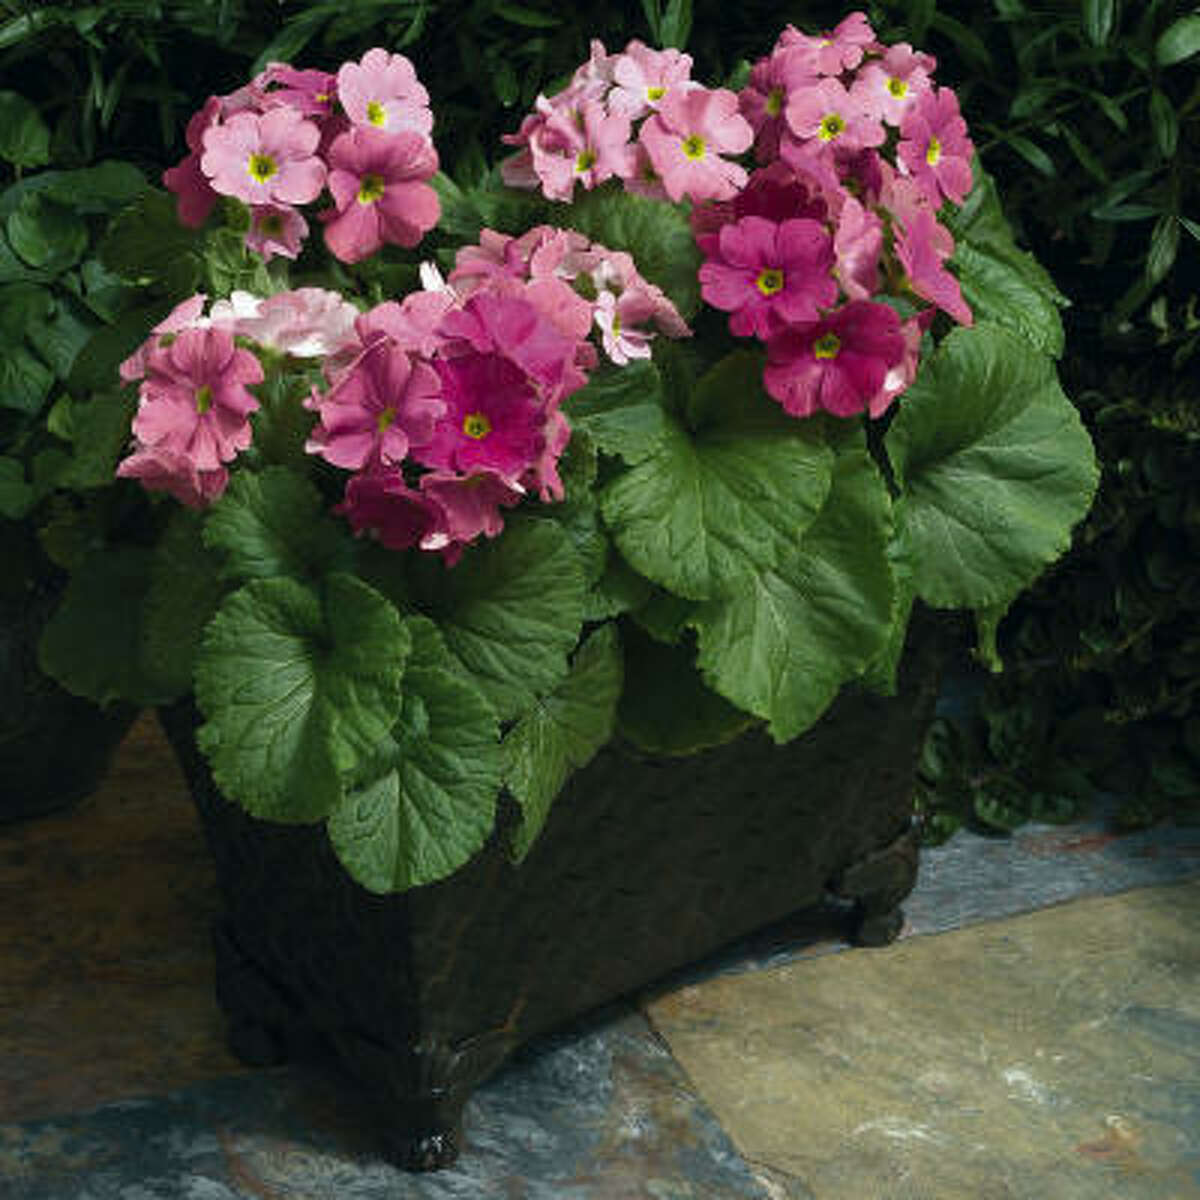 Primula obconica, or German primrose, will flower late fall through spring in part sun or bright shade.